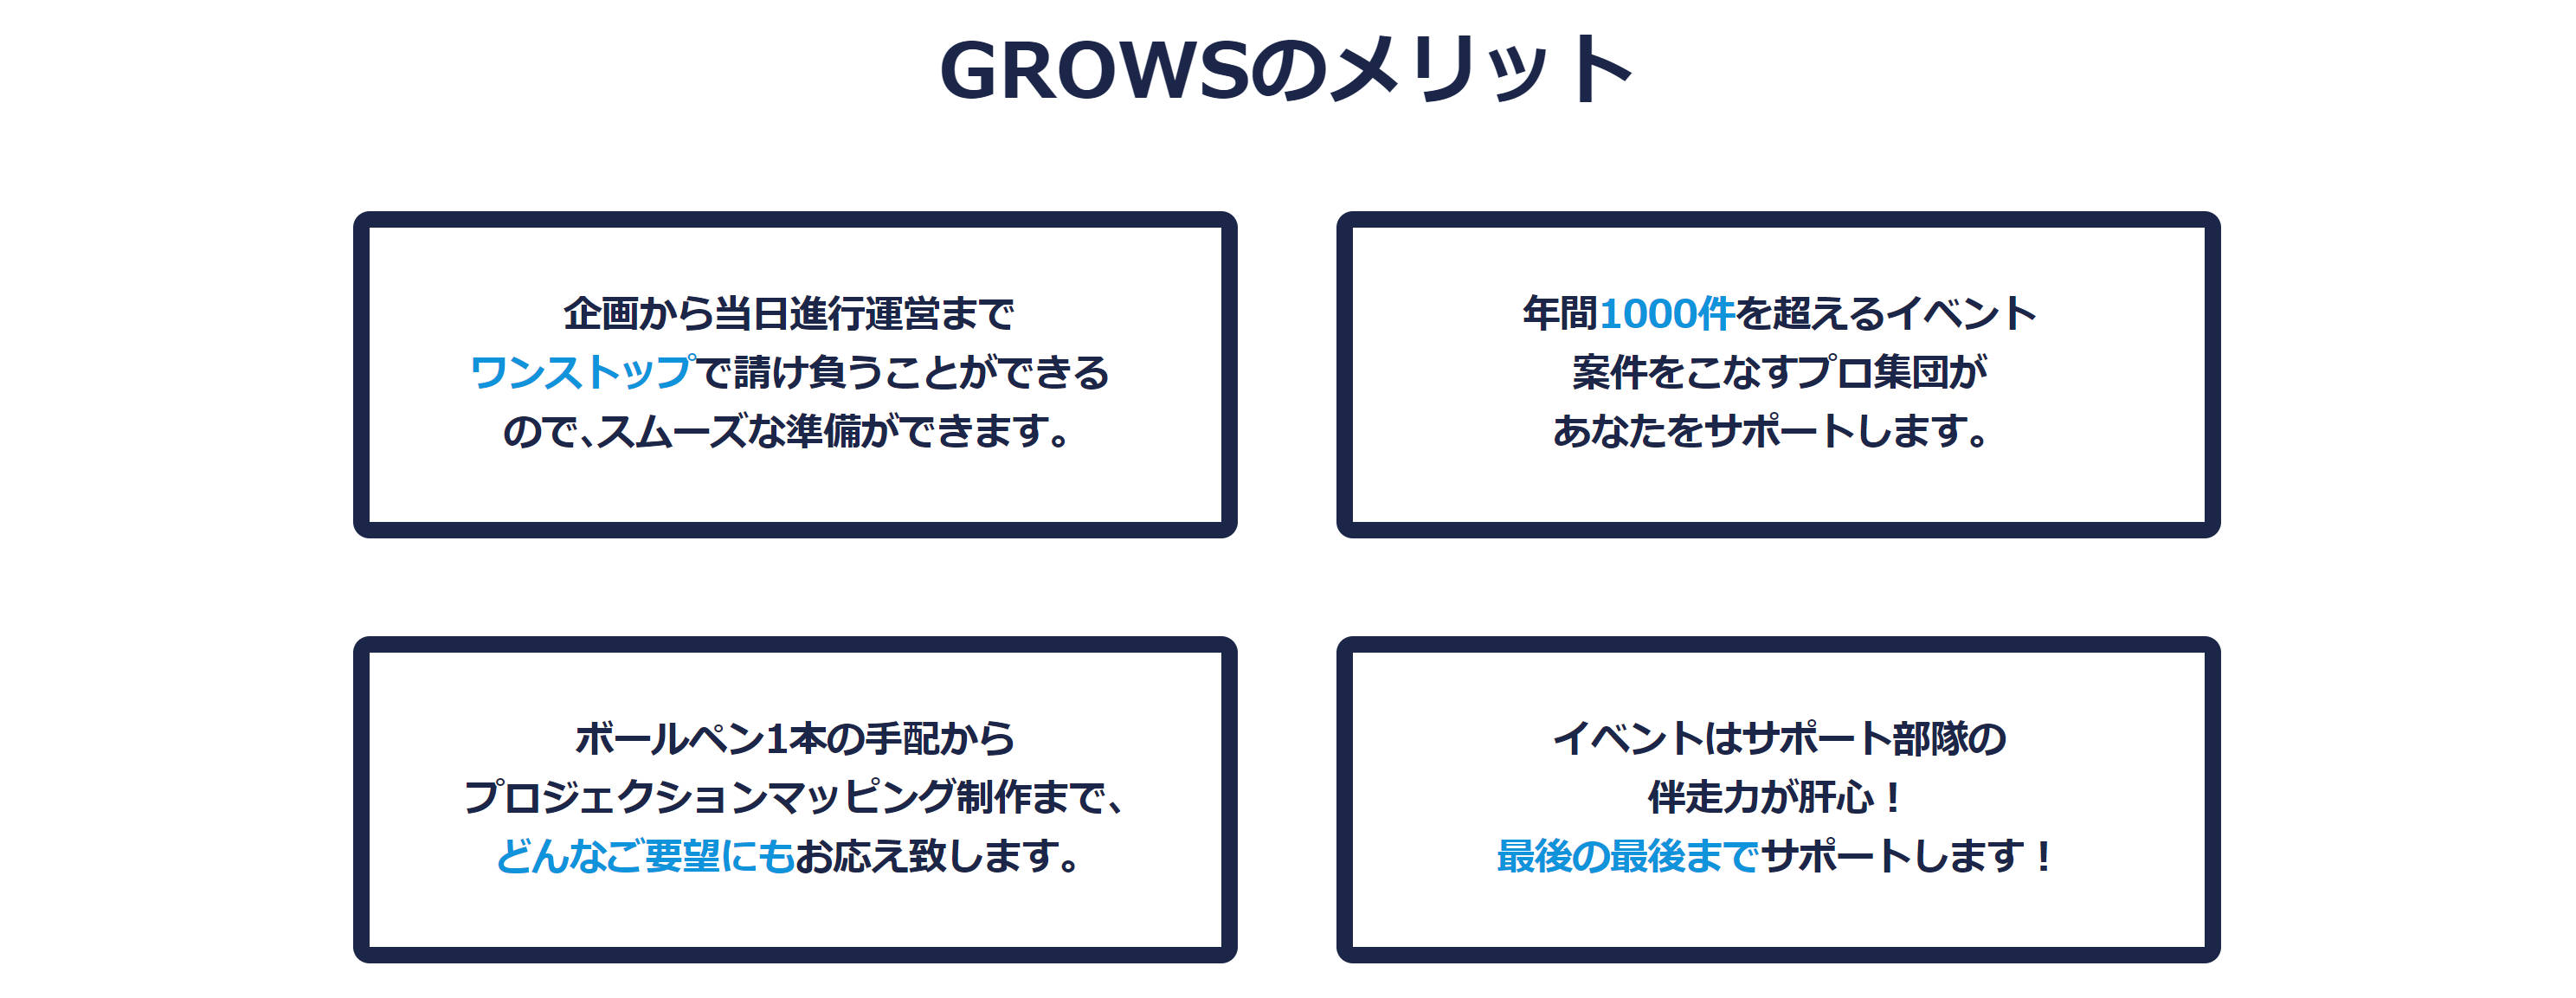 growsevent8